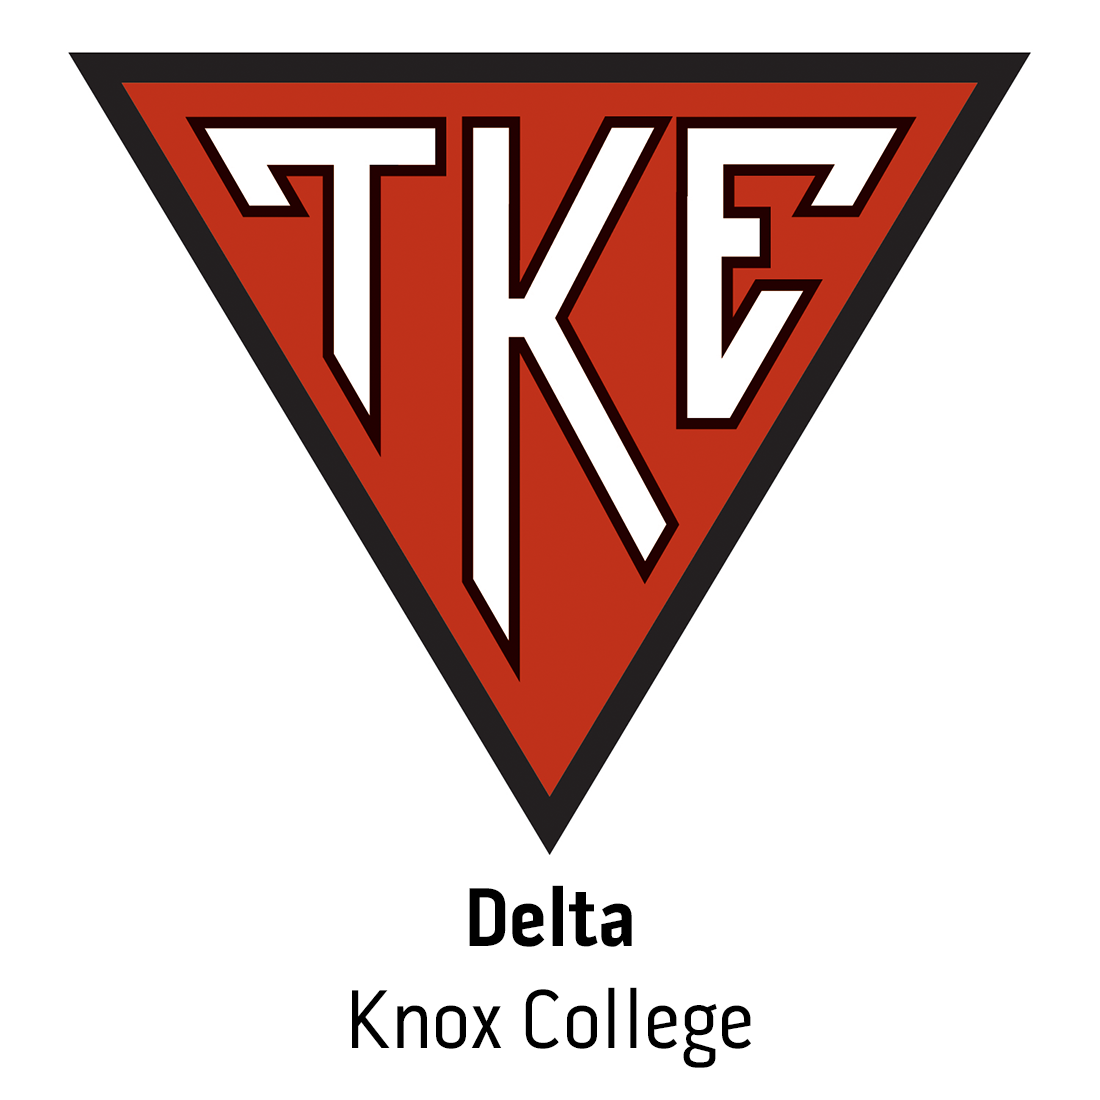 Delta Chapter at Knox College